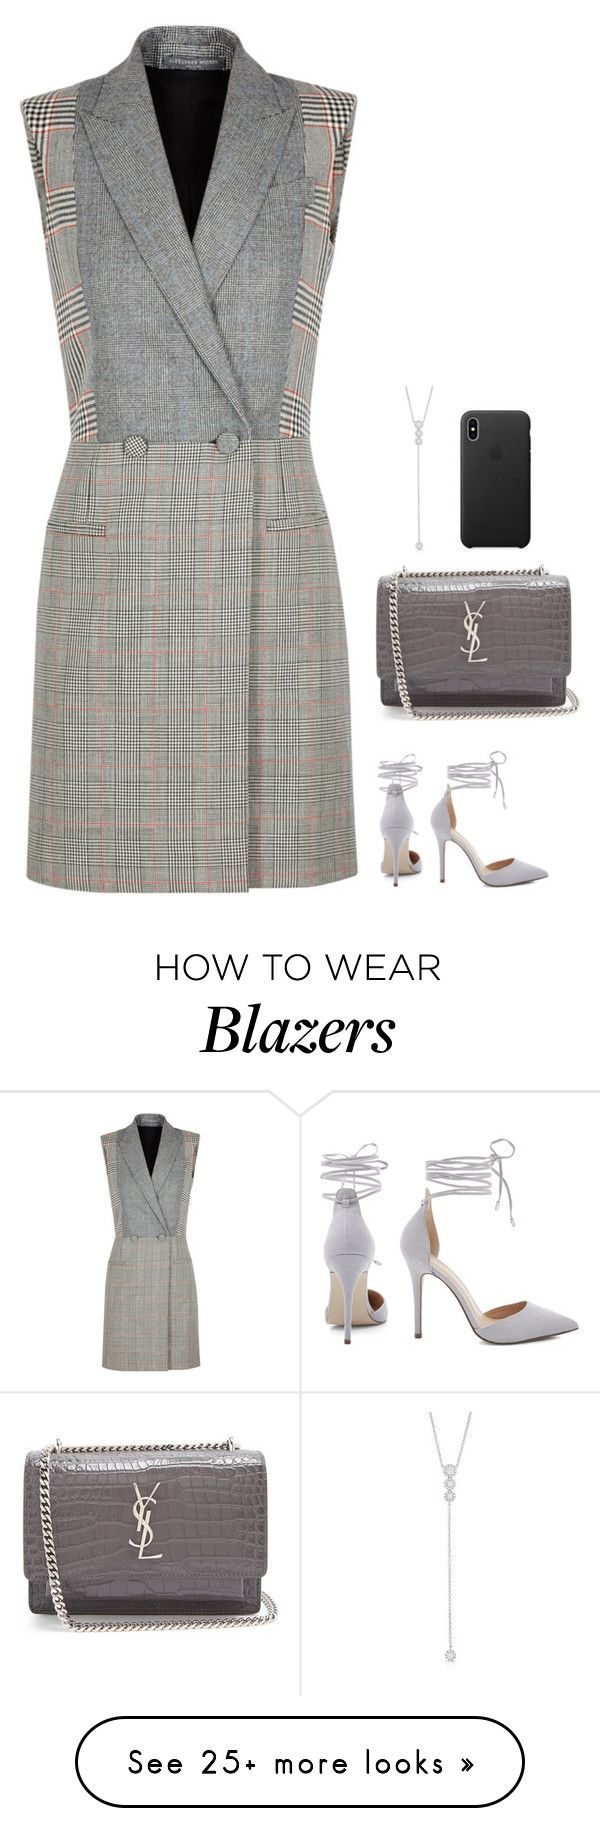 """""""#7489"""" by azaliyan on Polyvore featuring Alexander McQueen, Yves Saint Laurent and Anne Sisteron"""